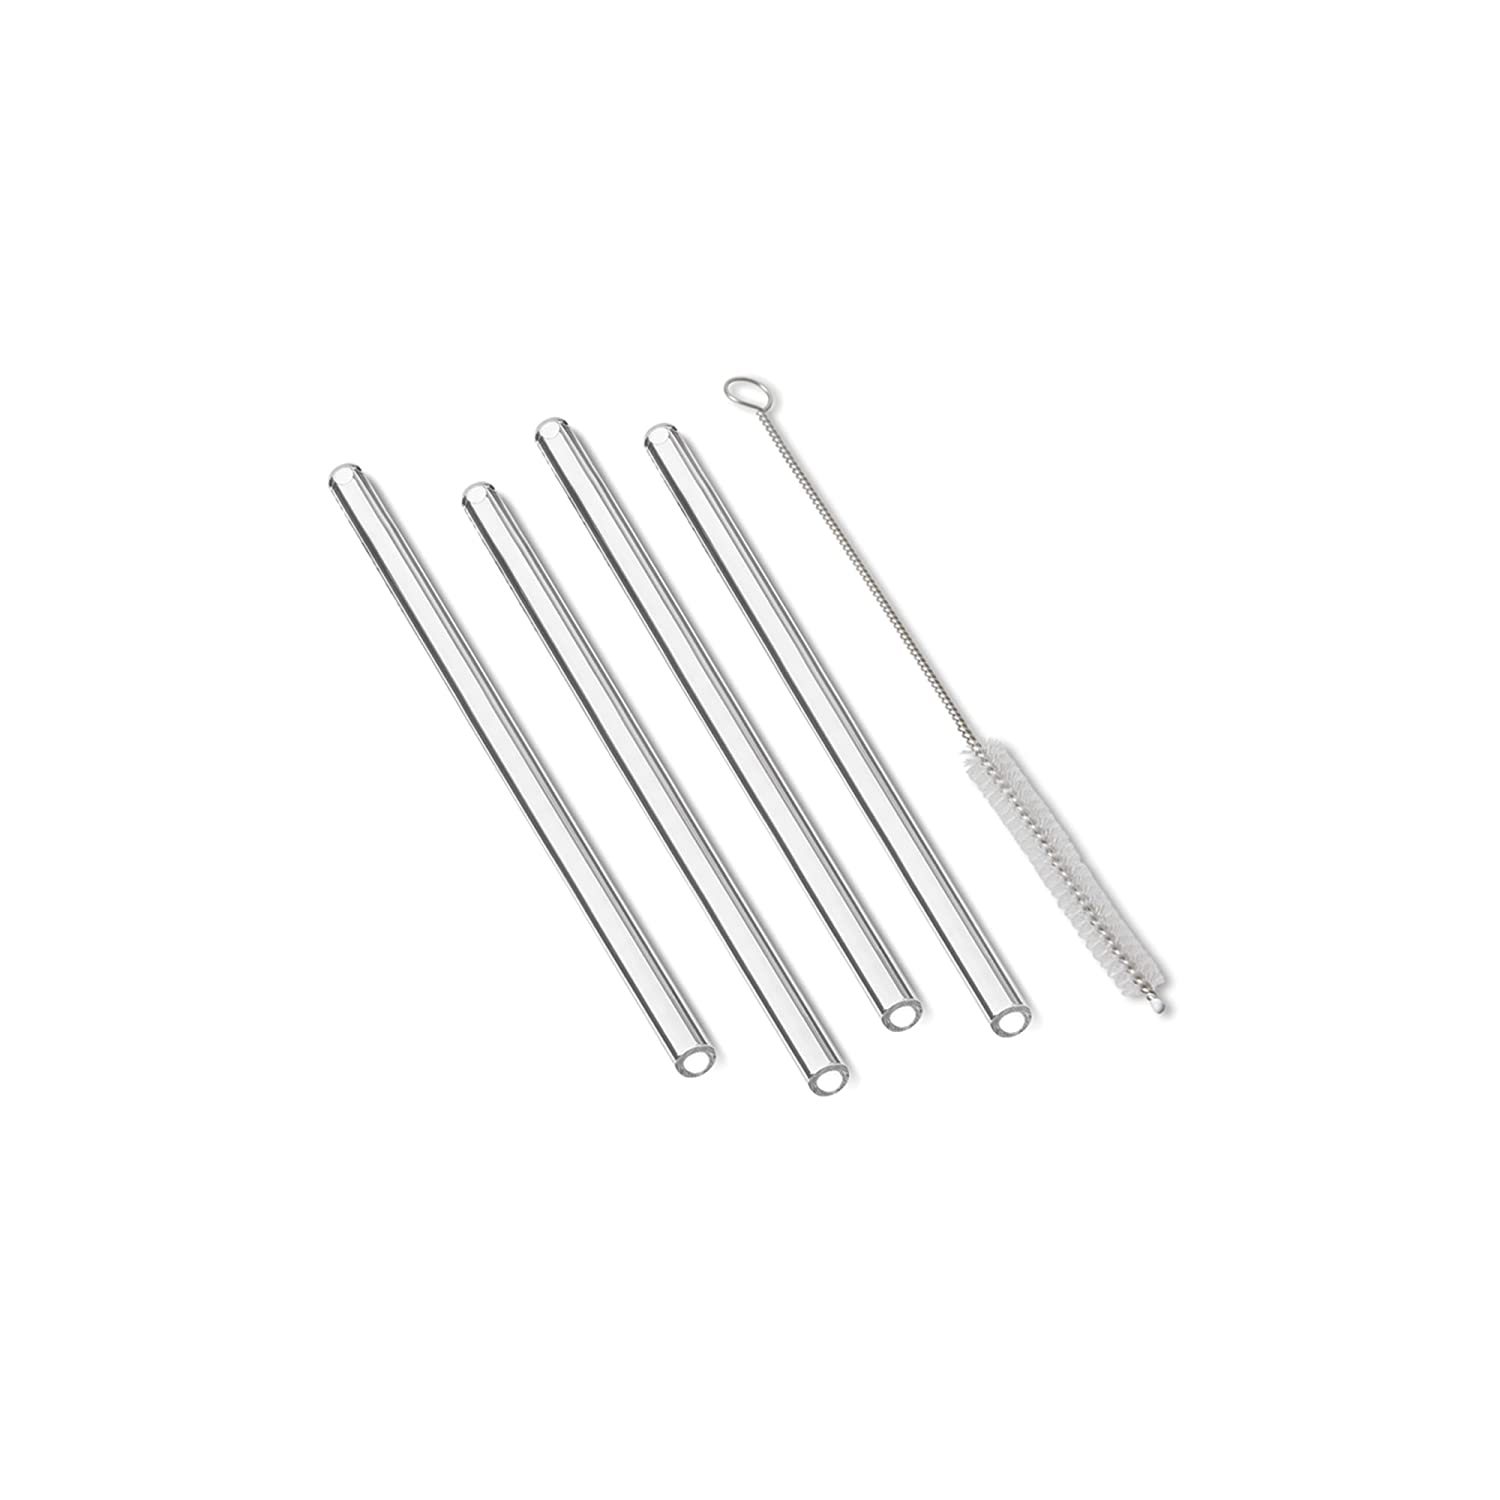 Straight Outset Chillware 76431 Reusable Drinking Straws Glass Set of 4 with Cleaning Brush FOX RUN